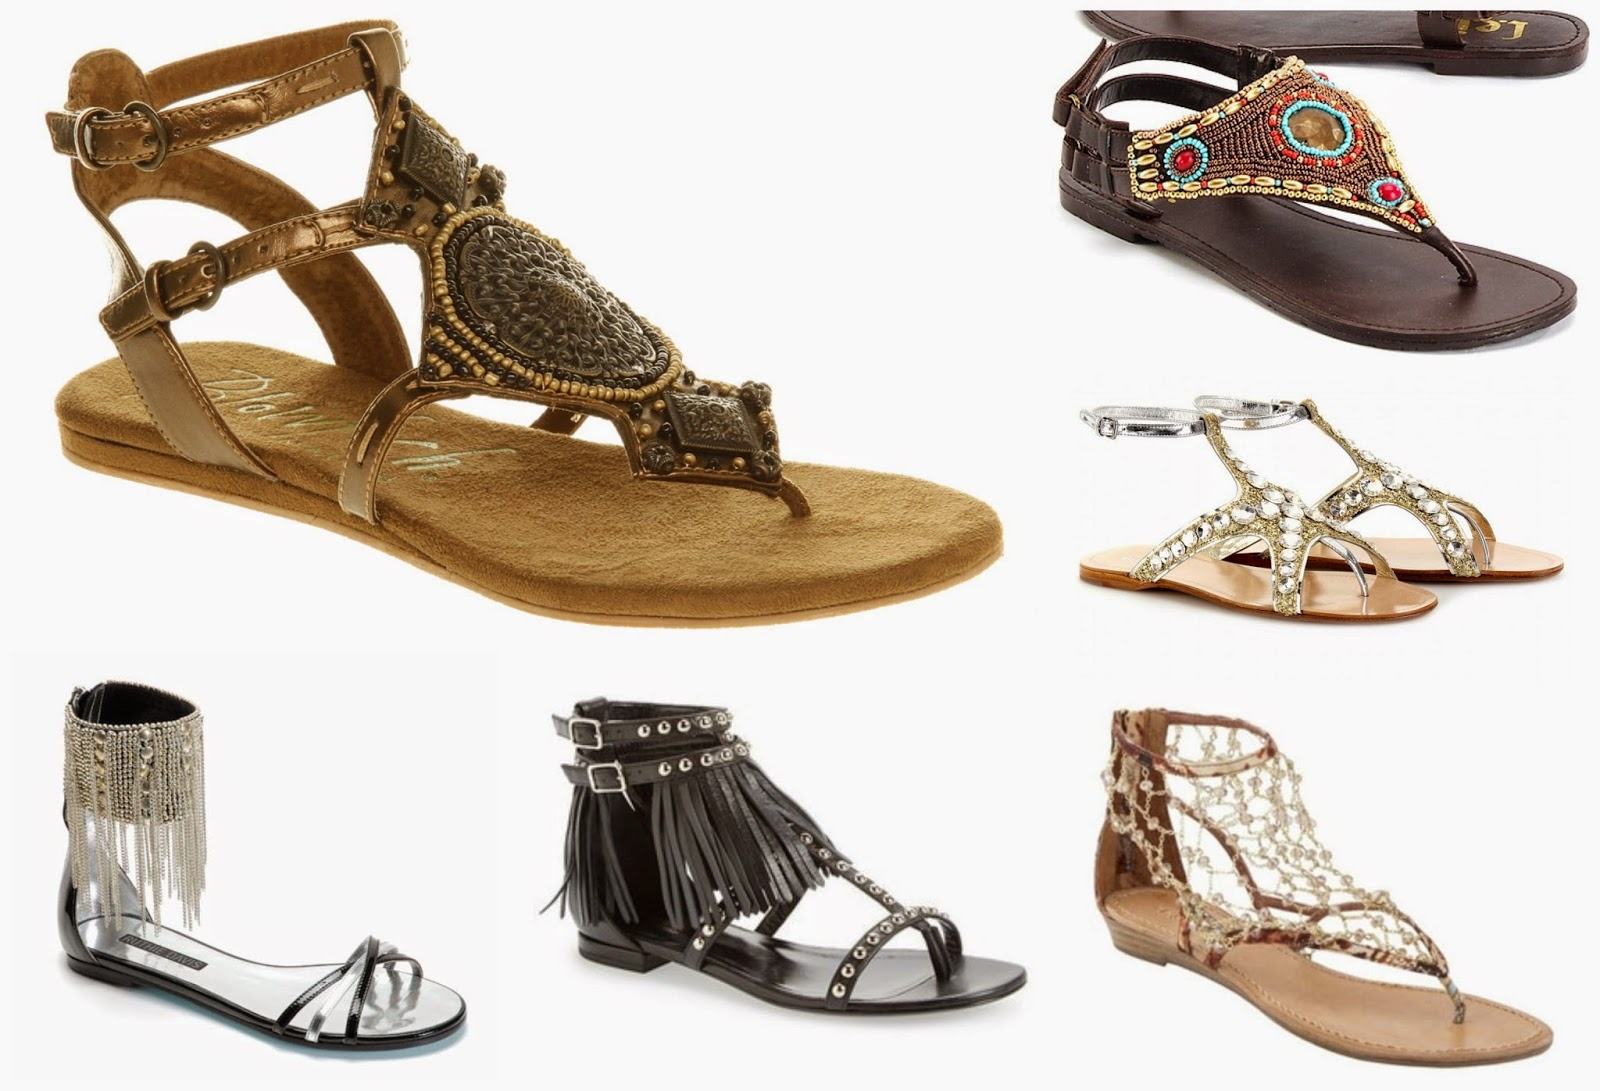 Sandals, flats, summer trends in shoes, must have flats , summer must haves, fringed sandals, ankle strap sandals, multi strap sandals